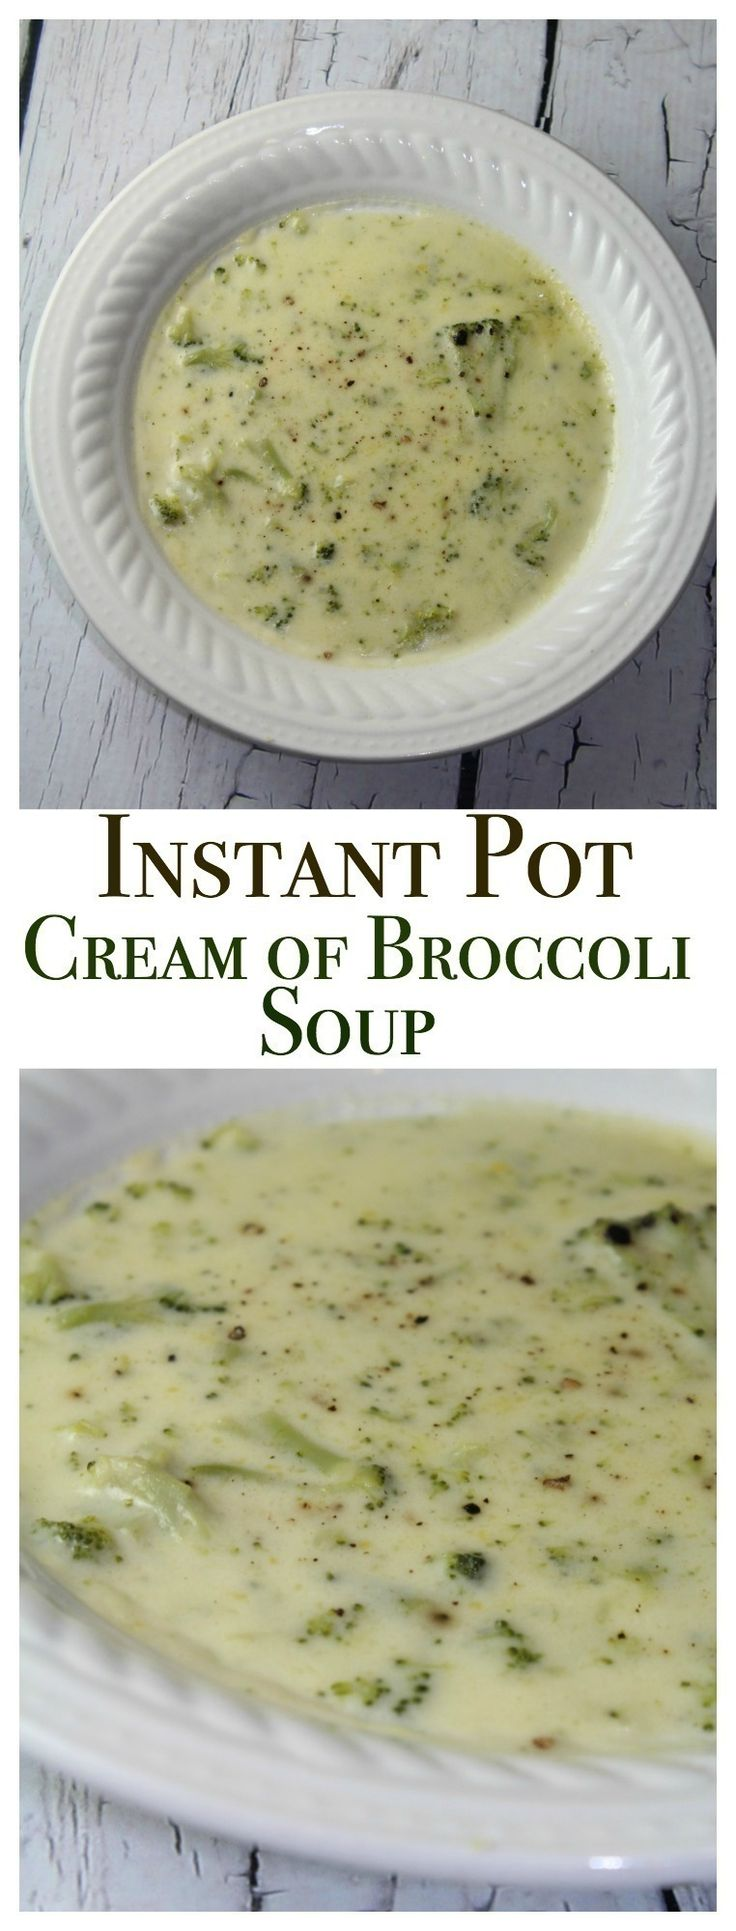 Easy Cream of Broccoli Soup                                                                                                                                                      More